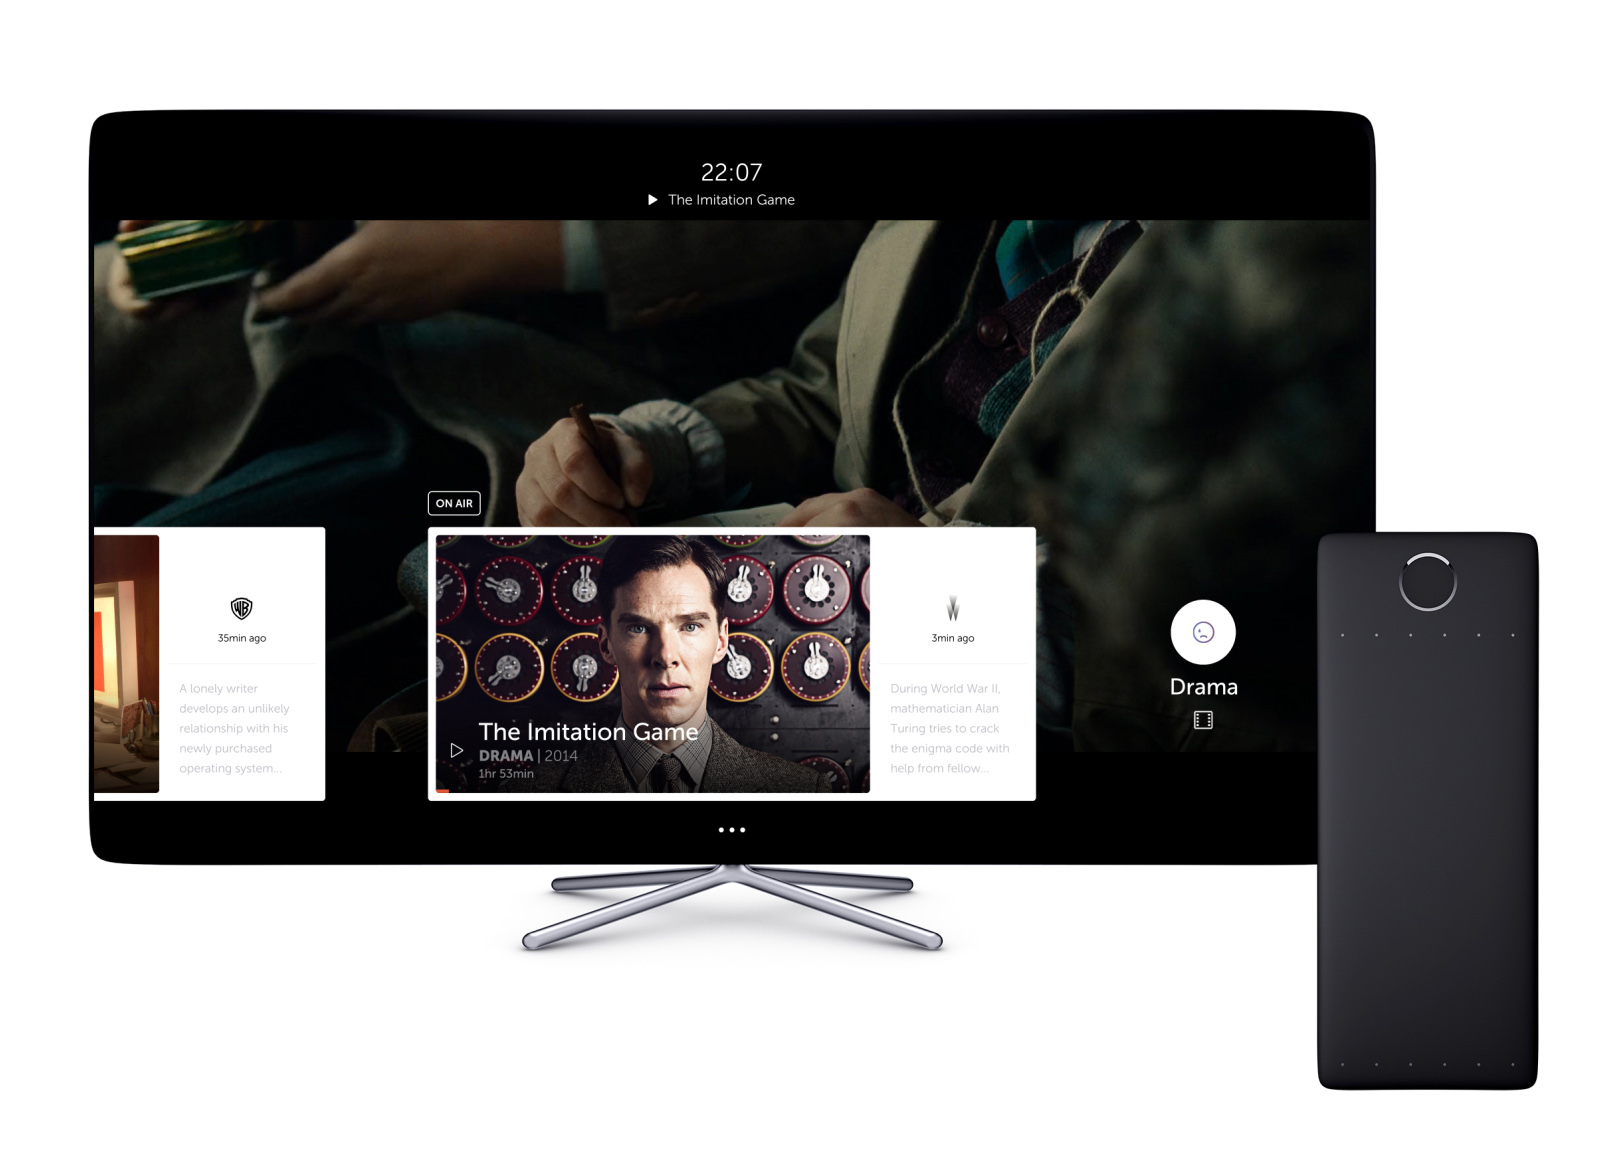 A New TV Concept Aims to Redefine Television for the Internet Generation